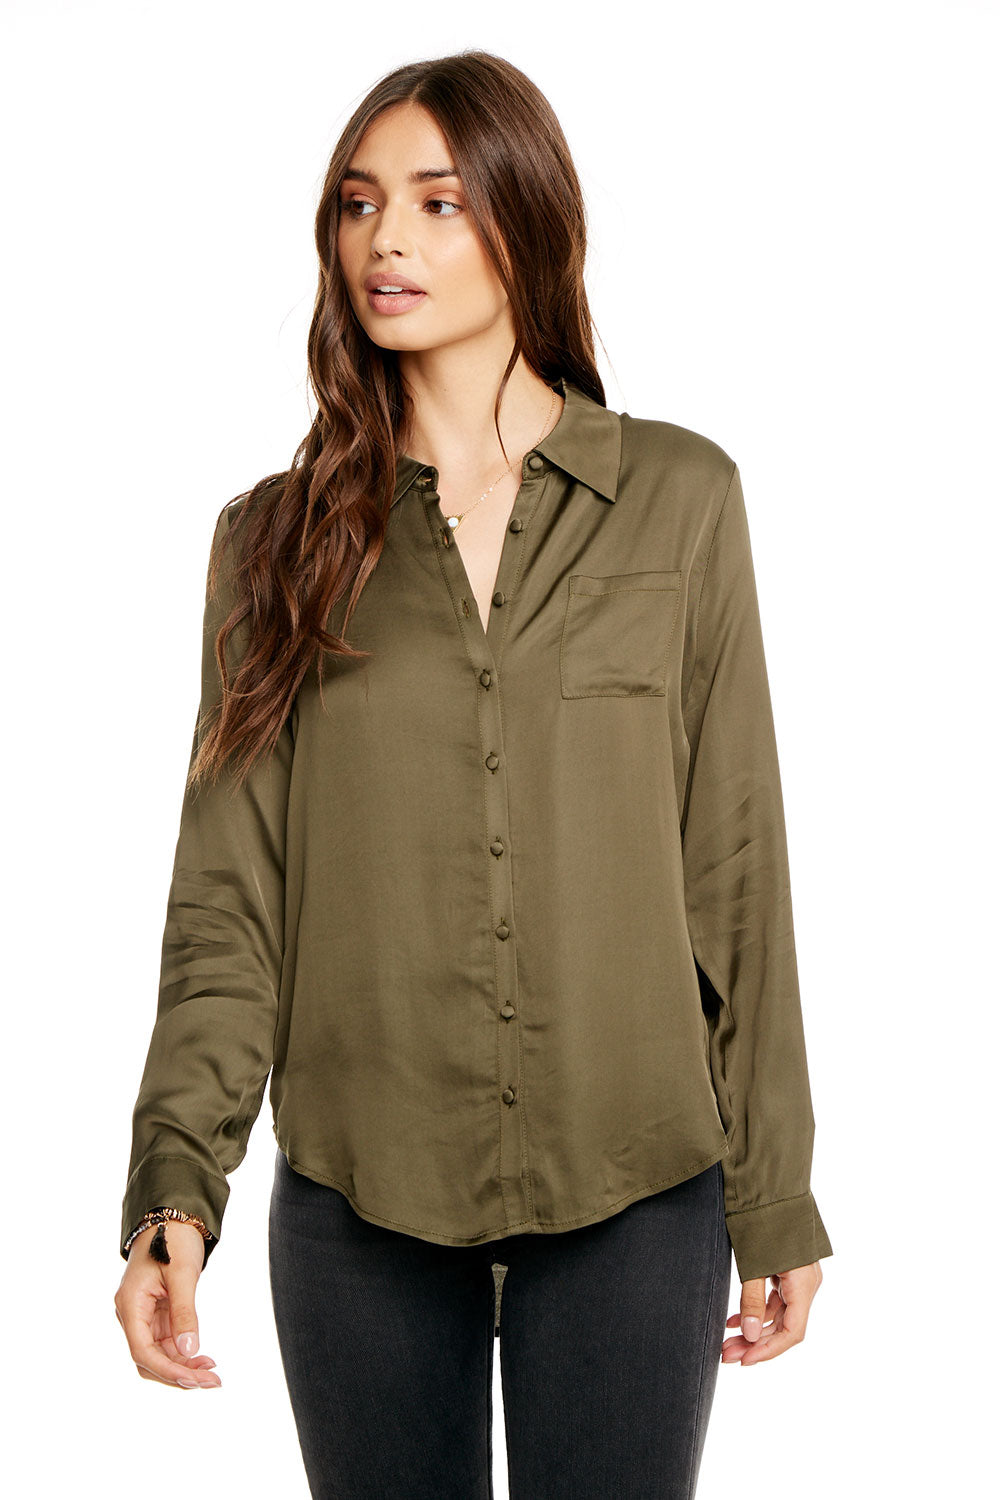 SILKY BASICS L/S HI-LO CLASSIC BUTTON DOWN SHIRT W/ POCKET WOMENS chaserbrand4.myshopify.com